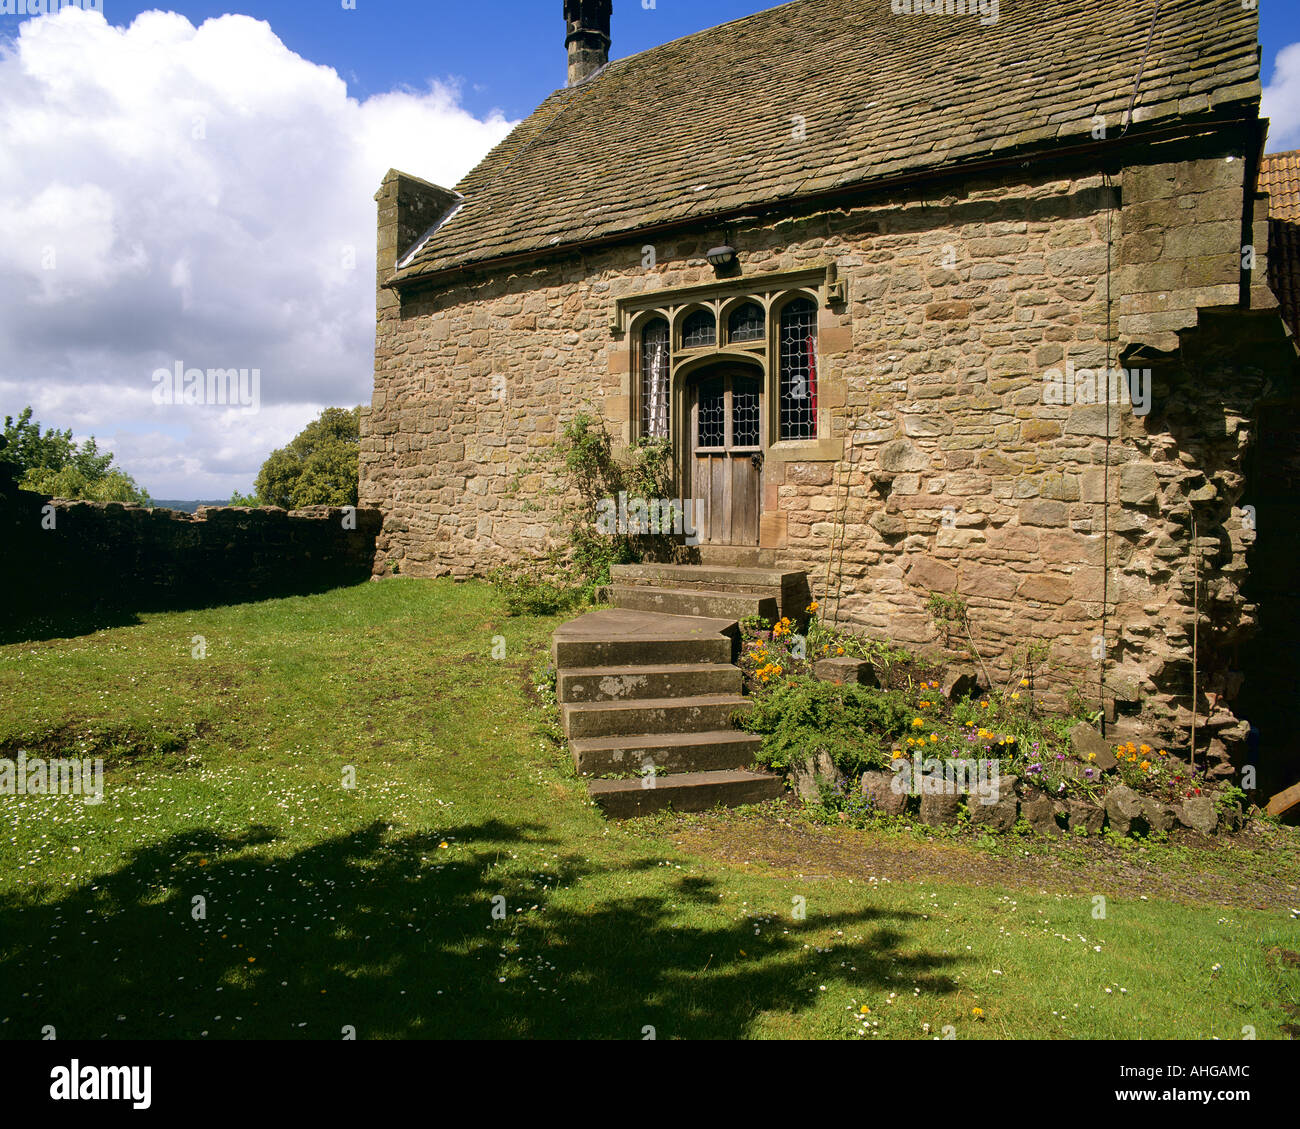 GB - GLOUCESTERSHIRE: St. Briavels Castle in the Forest of Dean Stock Photo